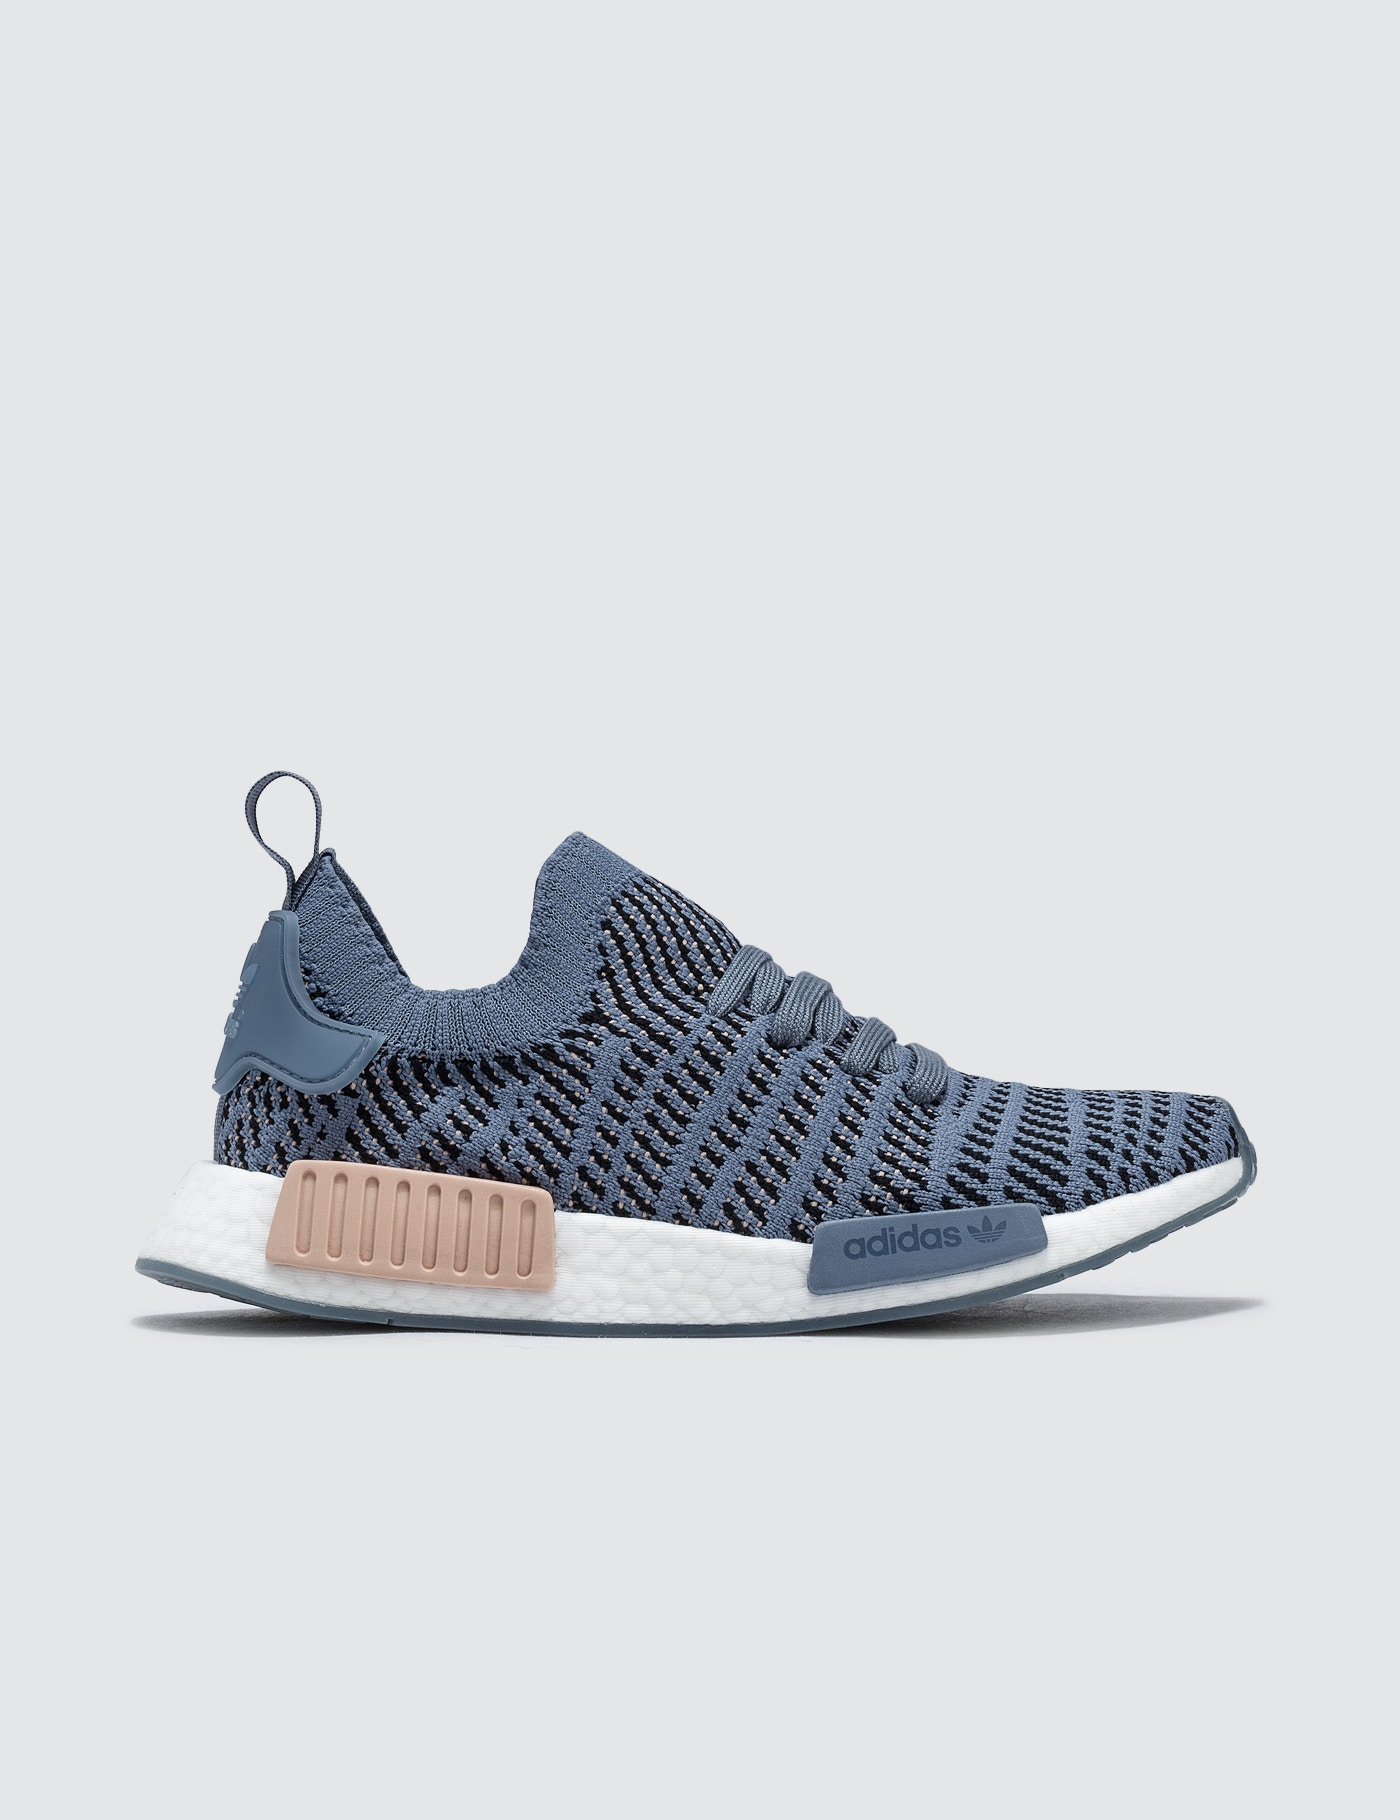 c49d9845c117f Buy Original Adidas Originals NMD R1 Stlt PK W at Indonesia